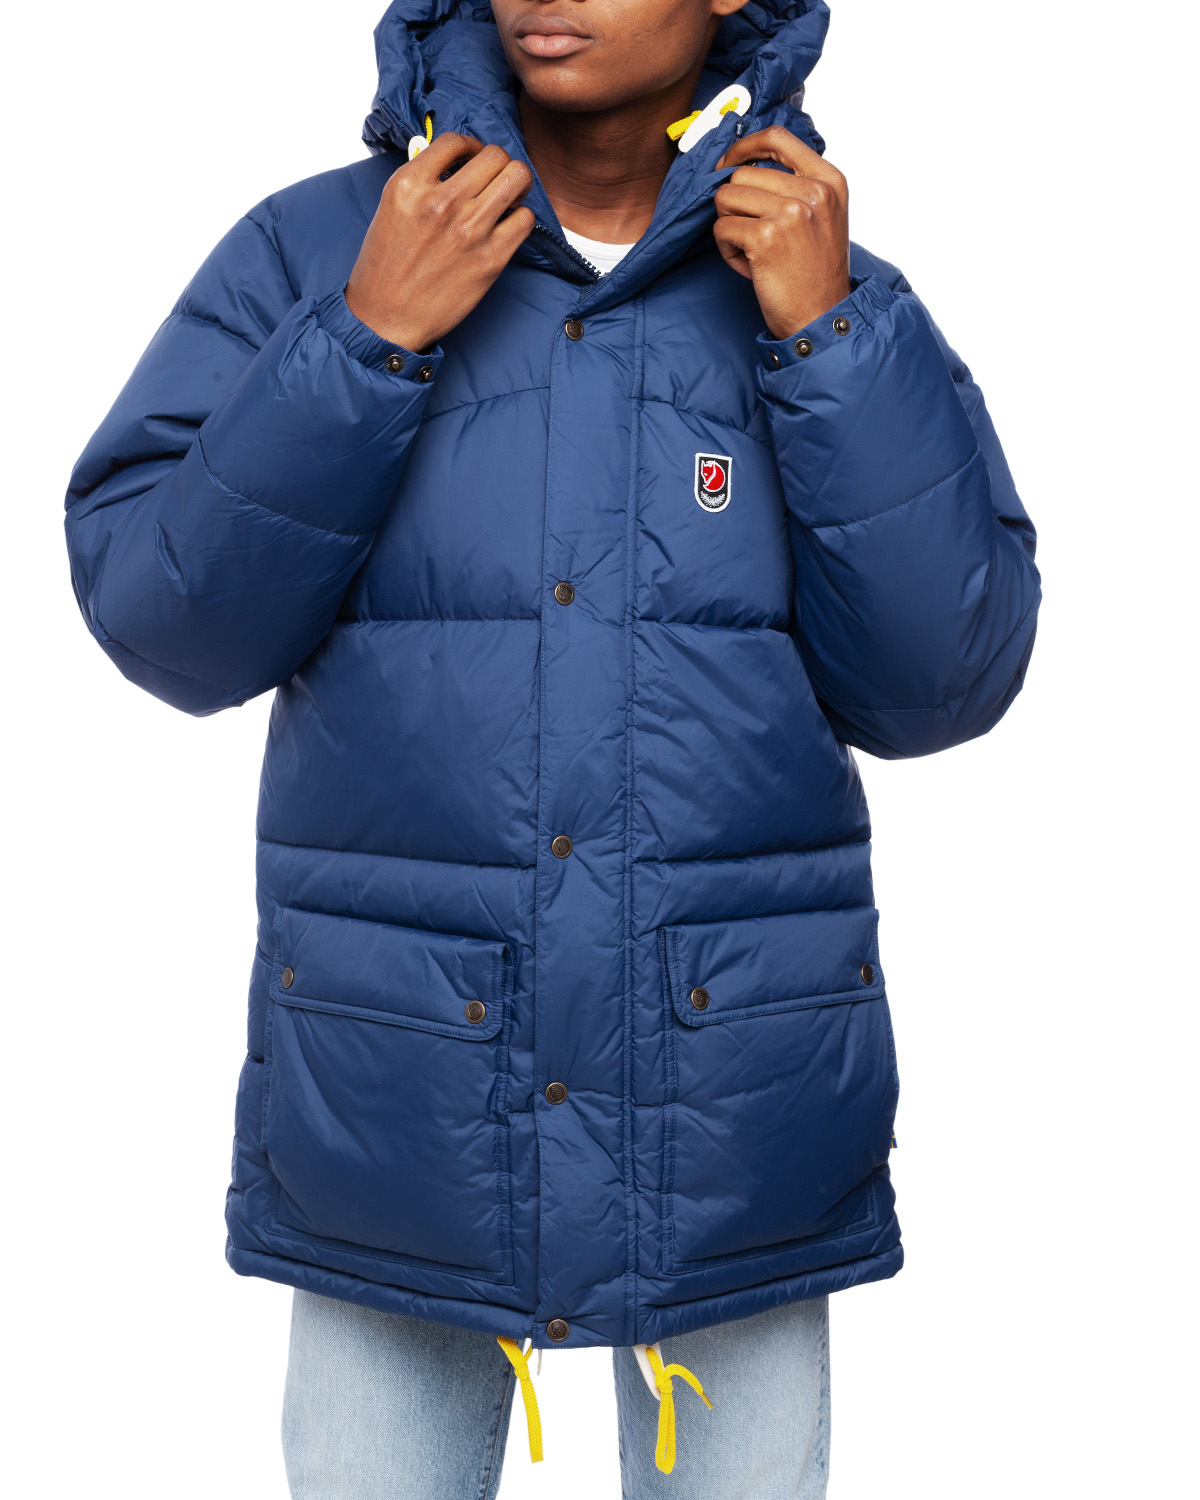 Expedition Down Jacket M Navy